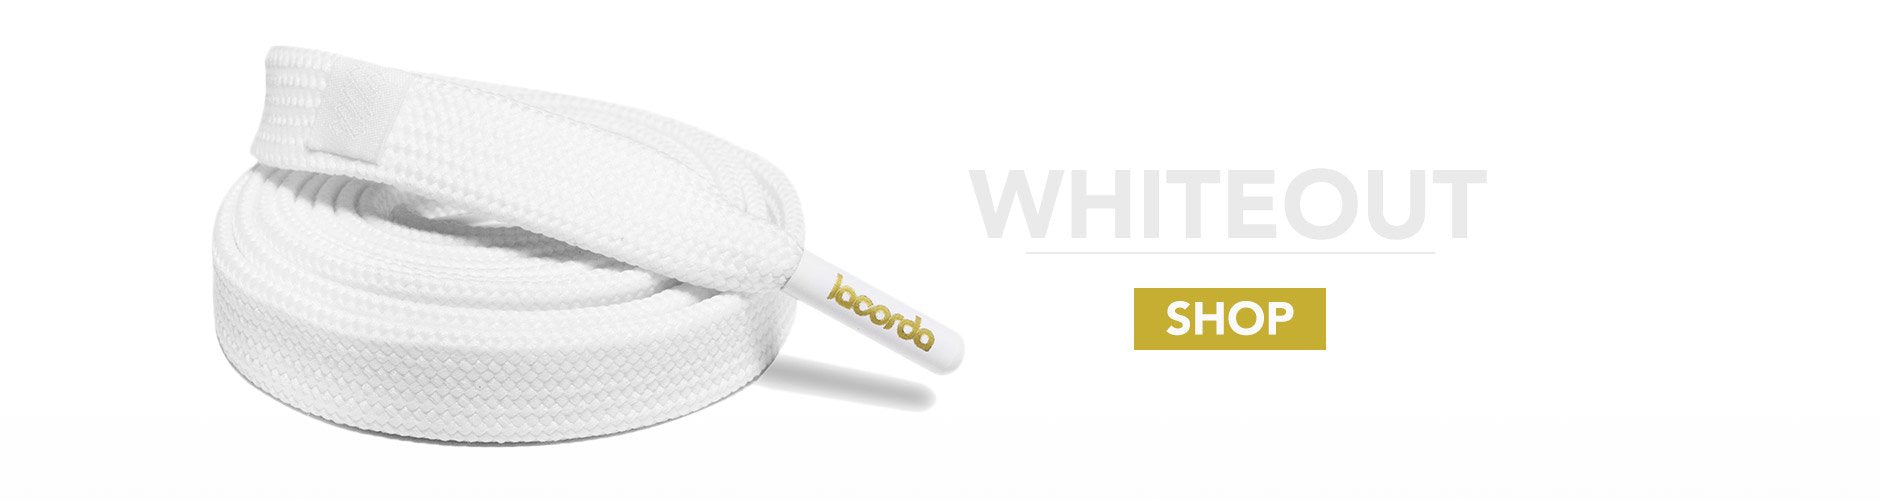 Whiteout Shoelace Belt